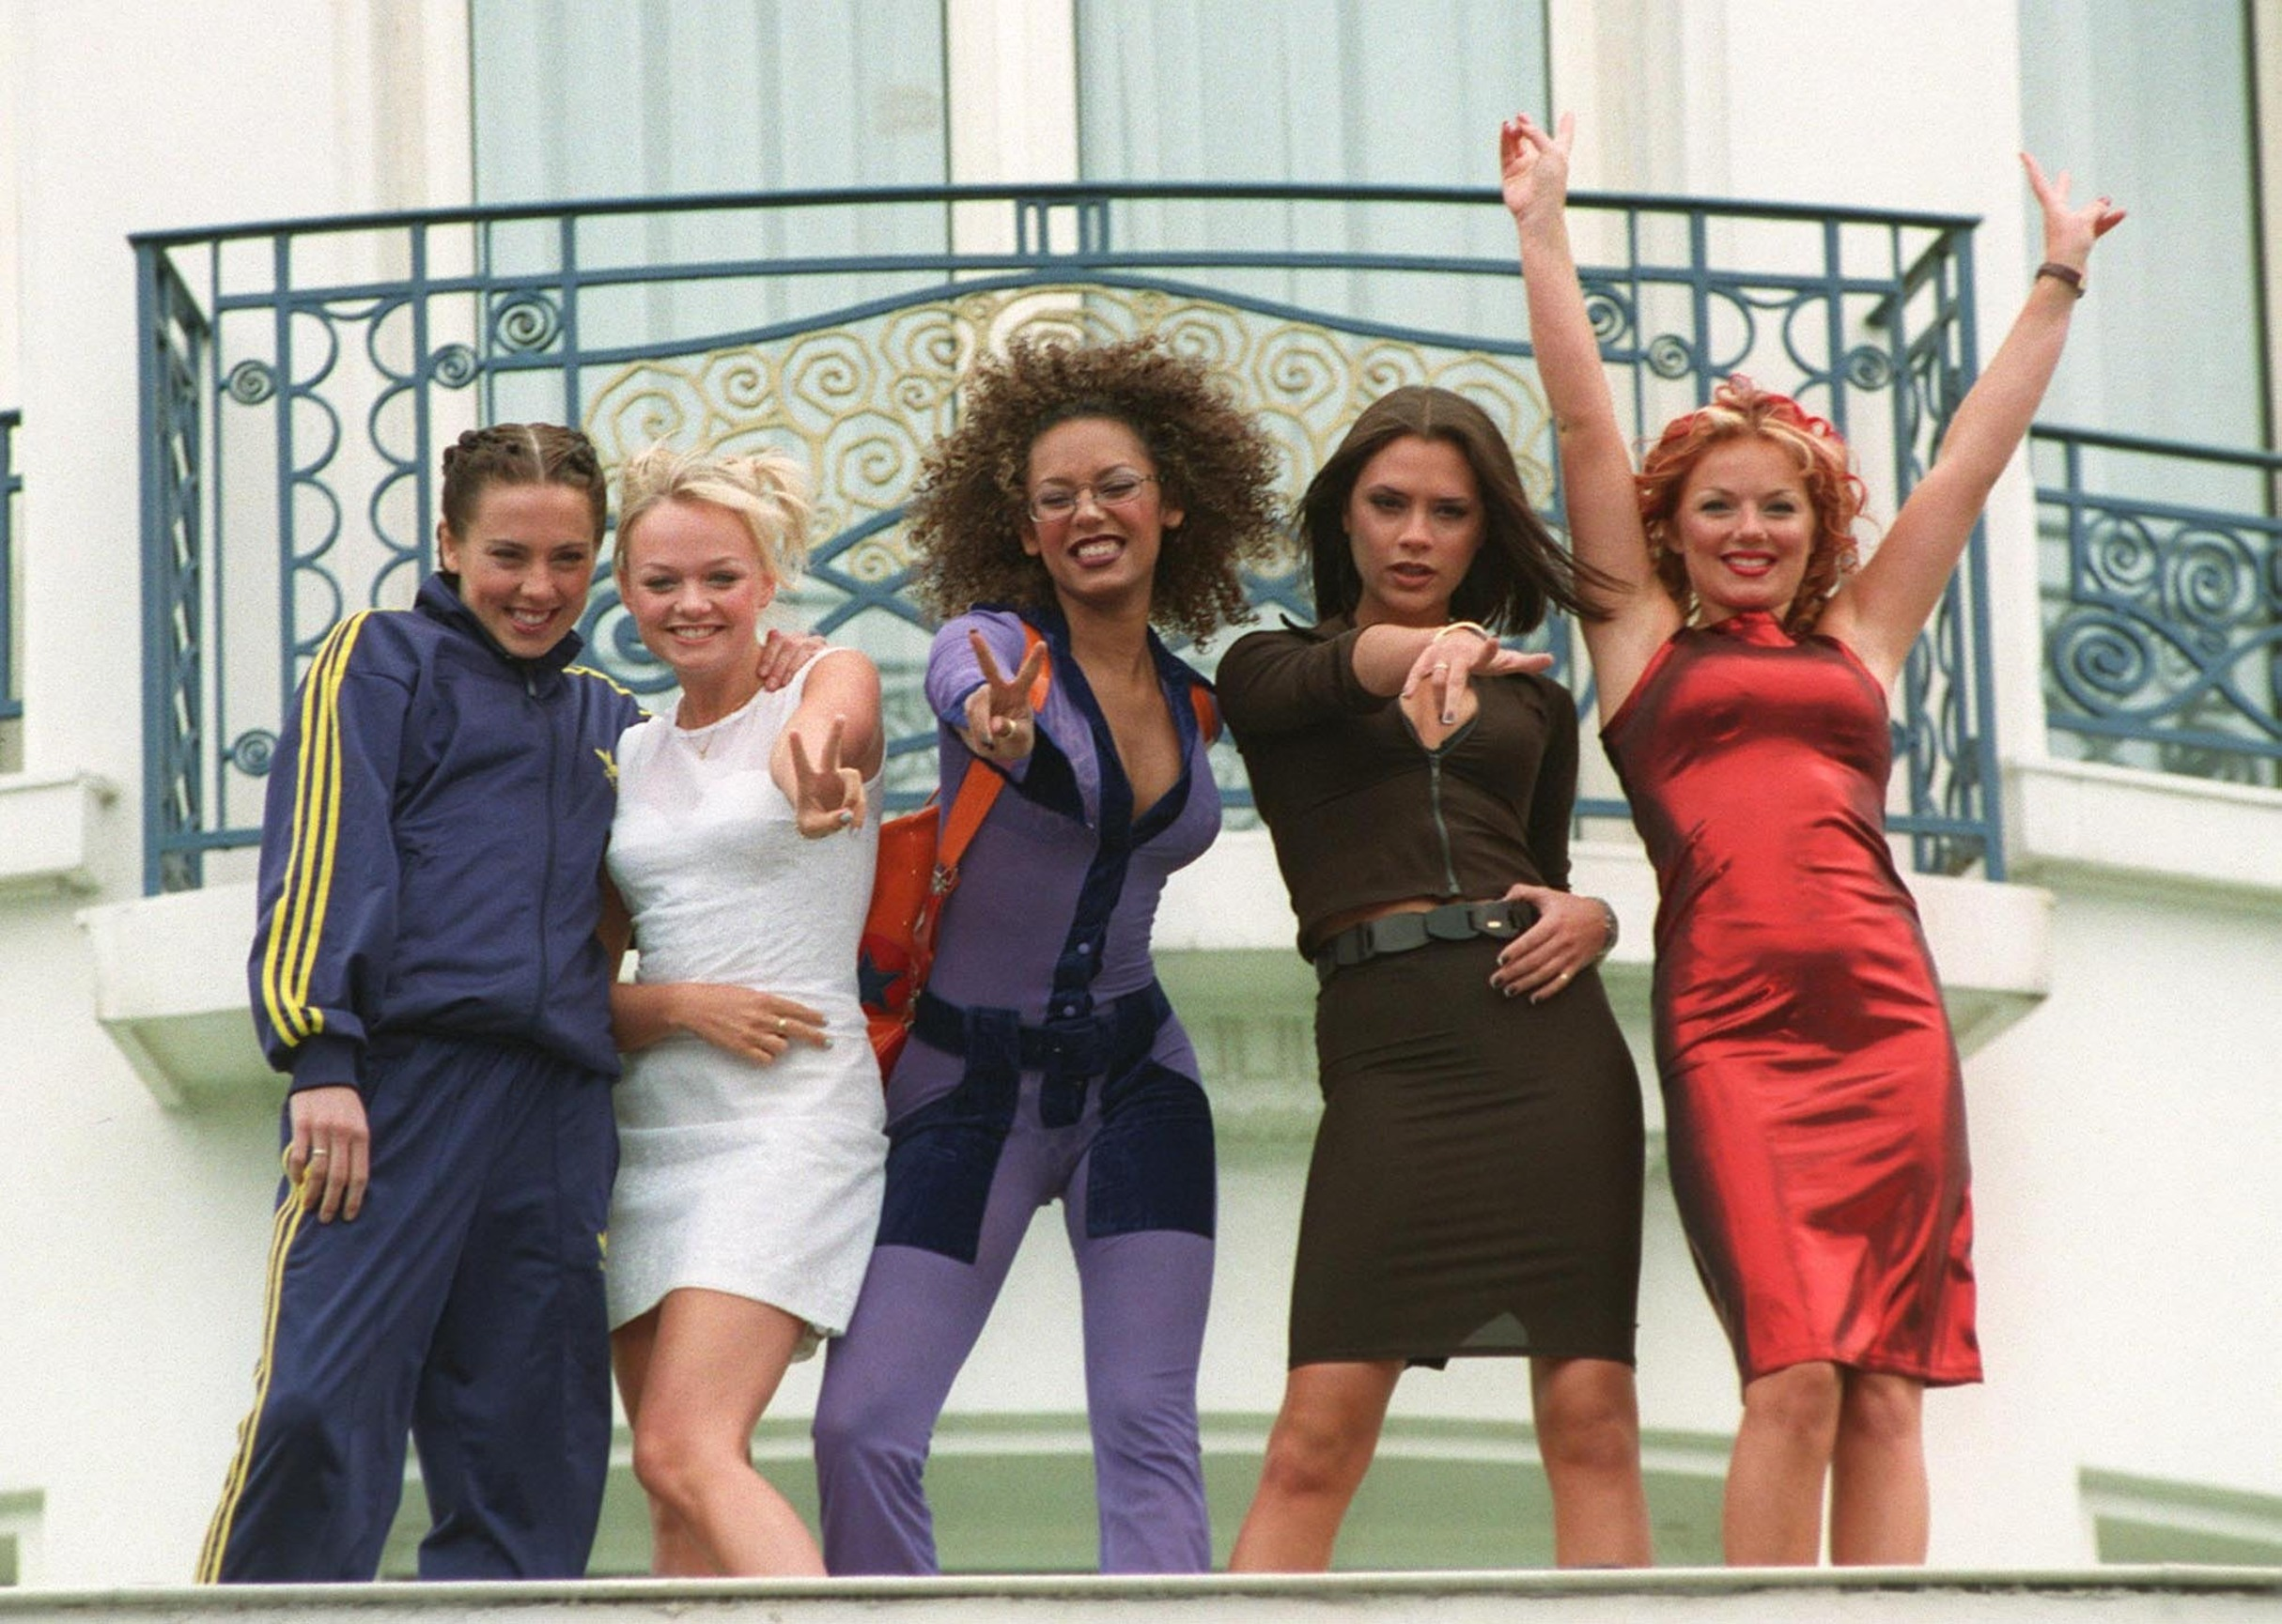 STOP EVERYTHING: Four New Spice Girls Songs Were Just Leaked! Listen Here!